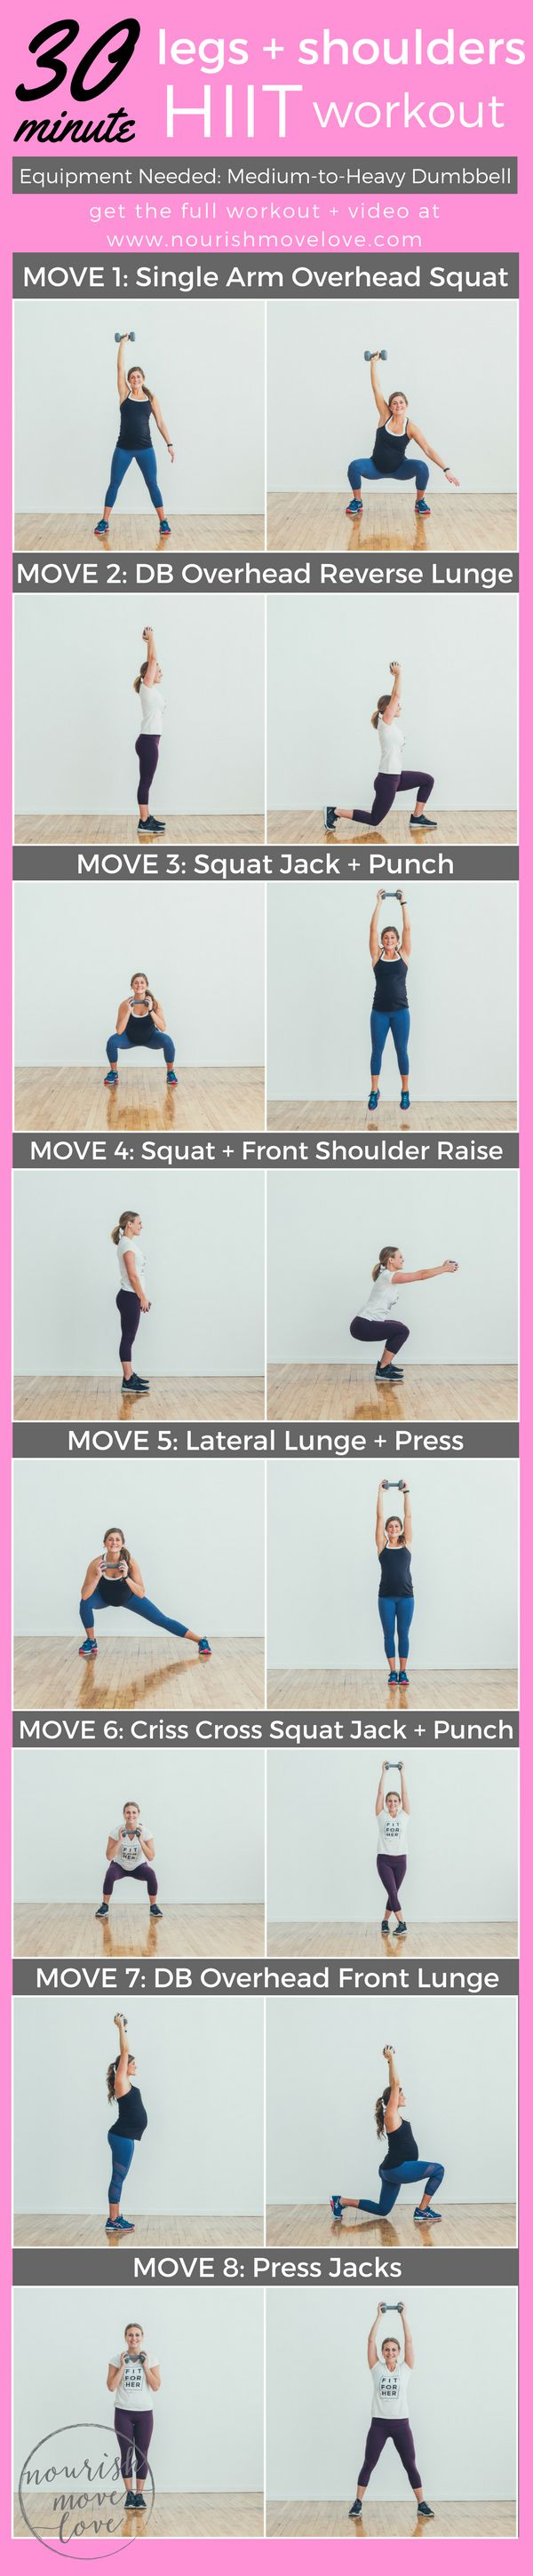 30 minute (HIIT) high intensity interval training workout targeting the legs and shoulders but still a total body burn! Challenge your shoulders, core, glutes, and legs with this 8 exercise workout challenge. Squat, lunch, punch, shoulder raise, and press.